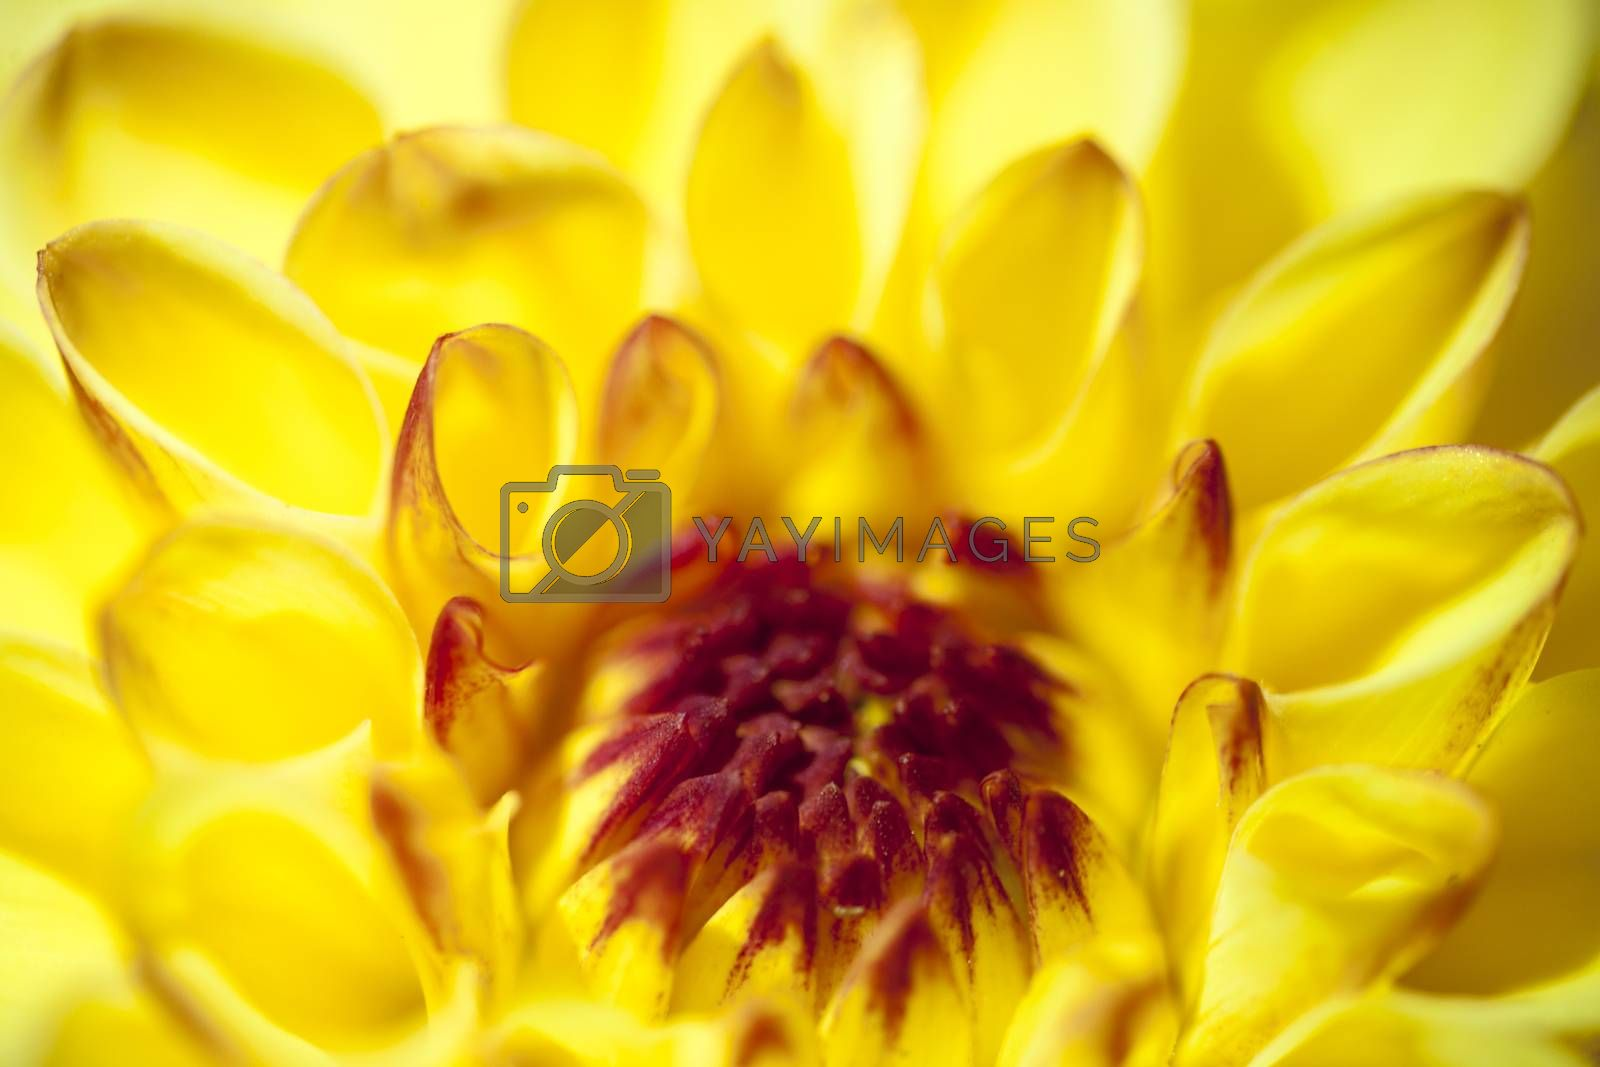 Chrysanthemum flower background macro high quality prints modern texture home decoration digital posters beautiful graphic abstract art smooth colorful design